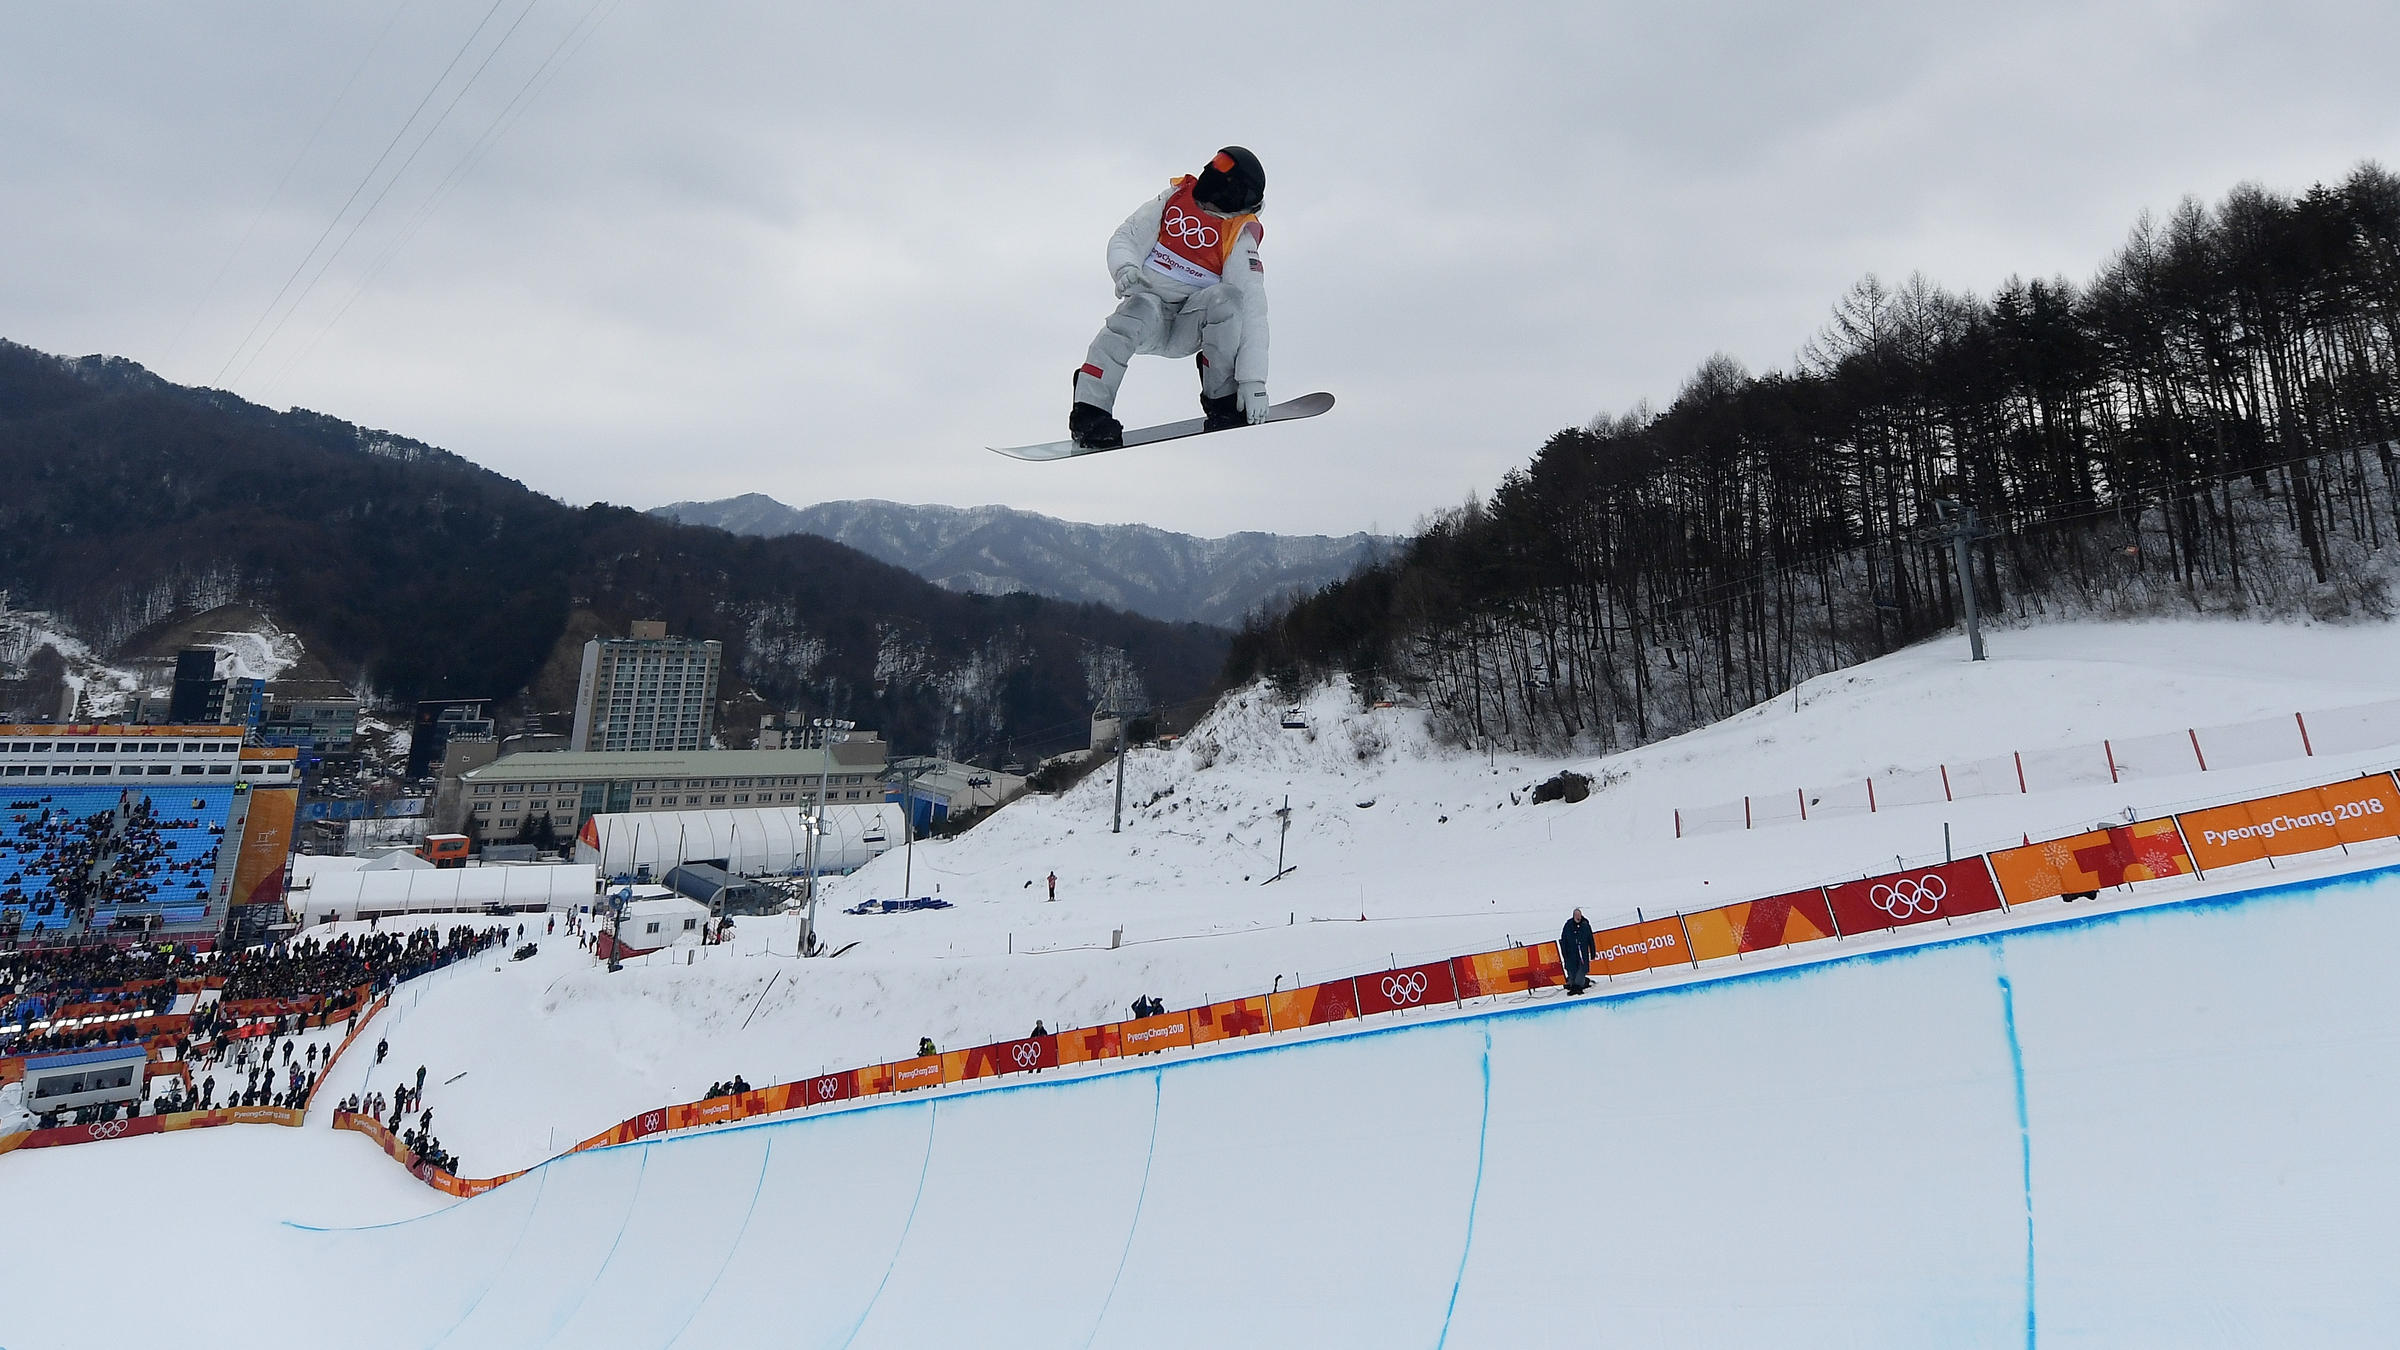 Drama as snowboarder White claims landmark gold